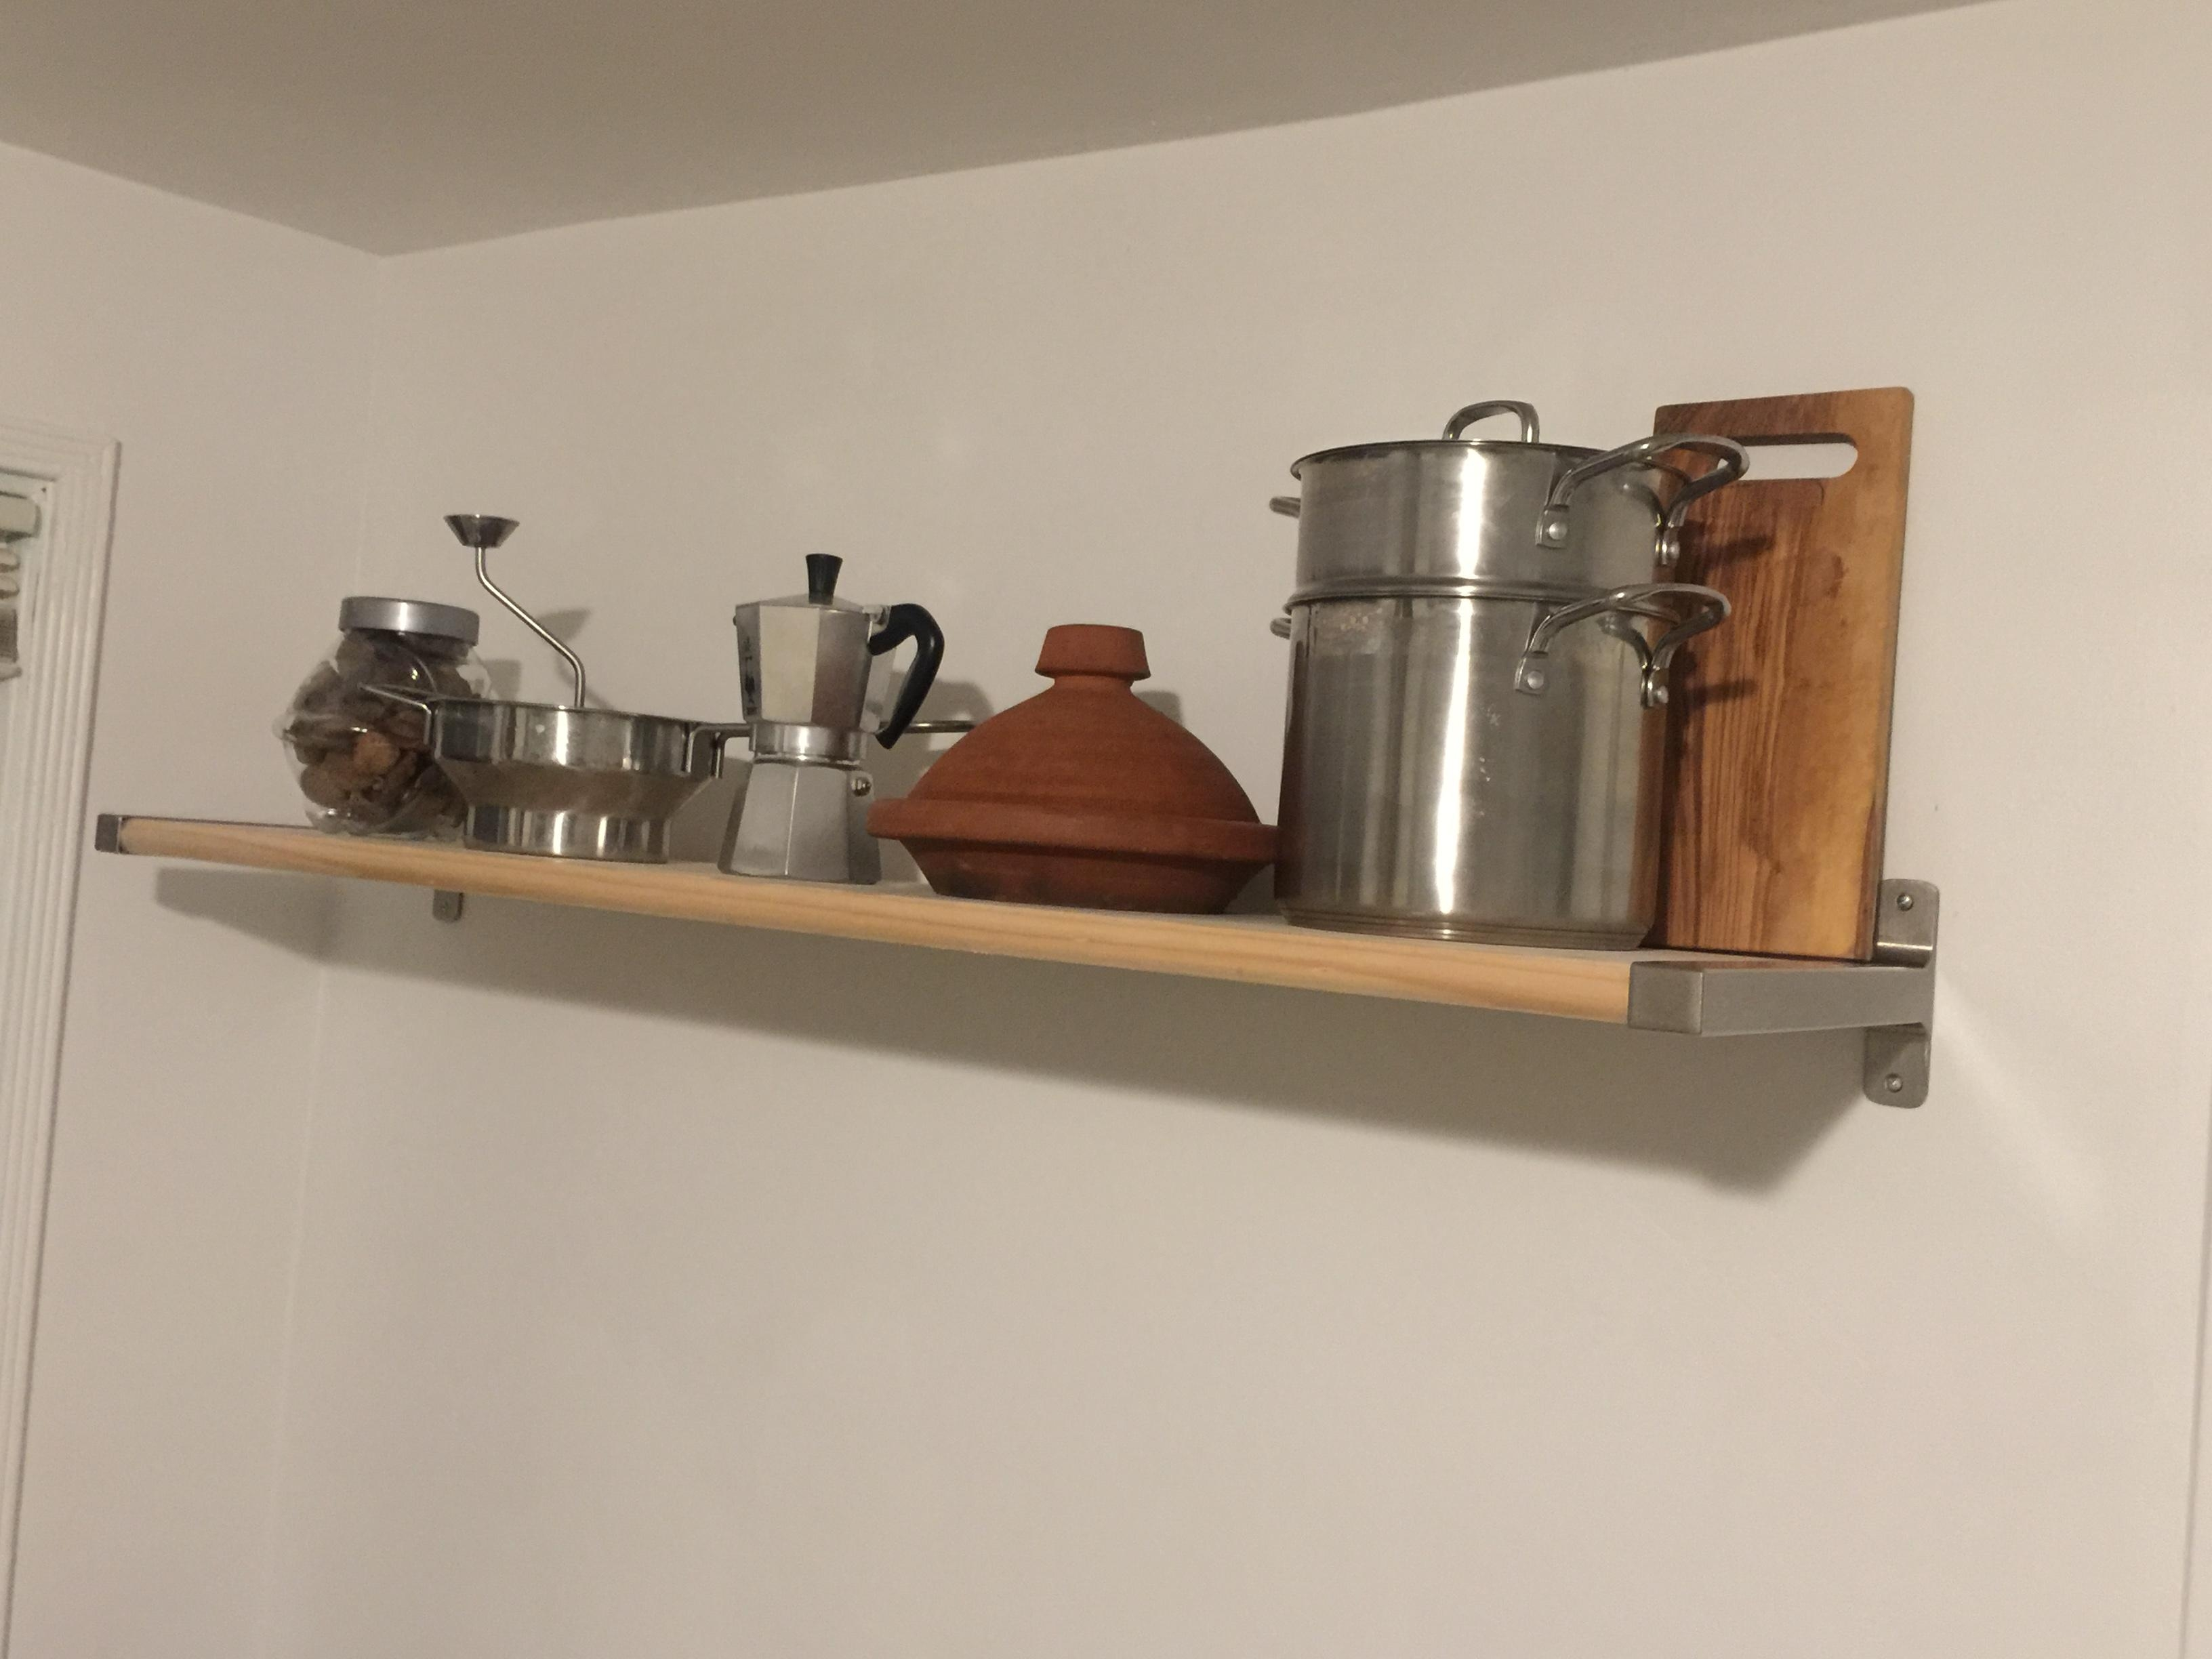 with Ikea brackets wood from homedepot, I created this shelf to hold some precious tools :)